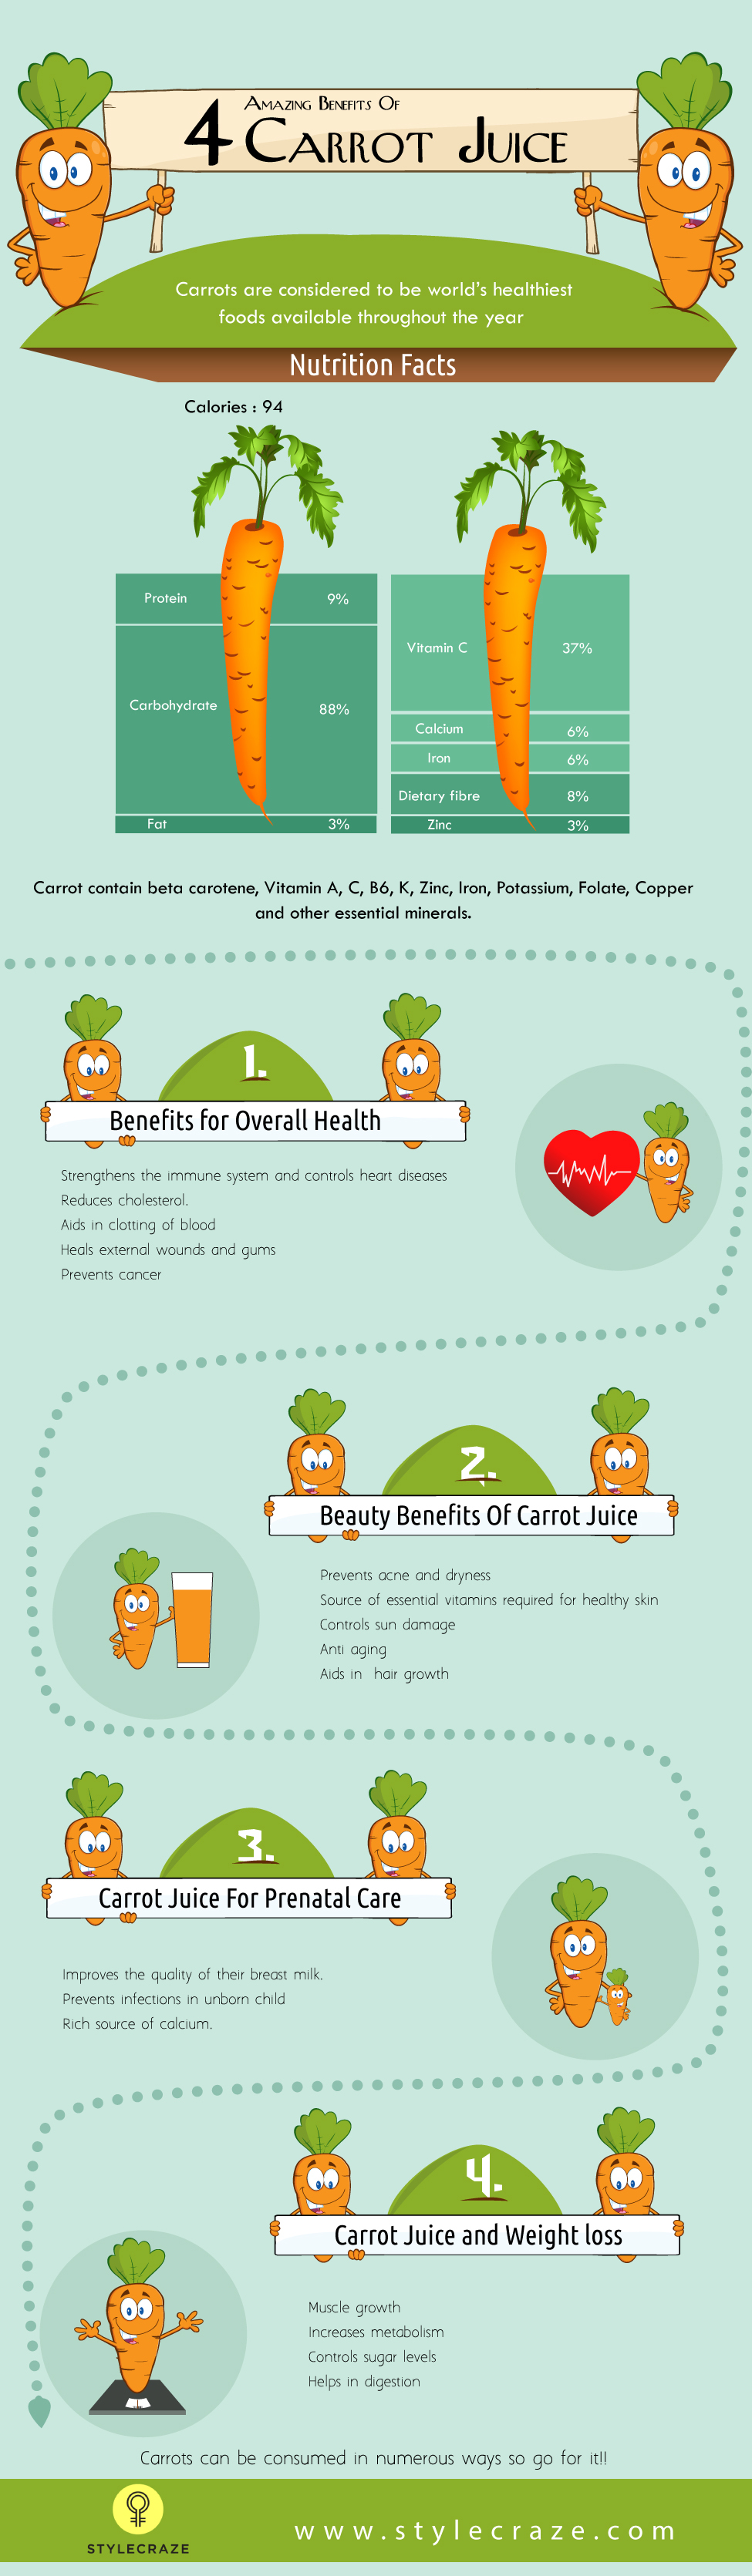 24 Amazing Benefits Of Carrot Juice